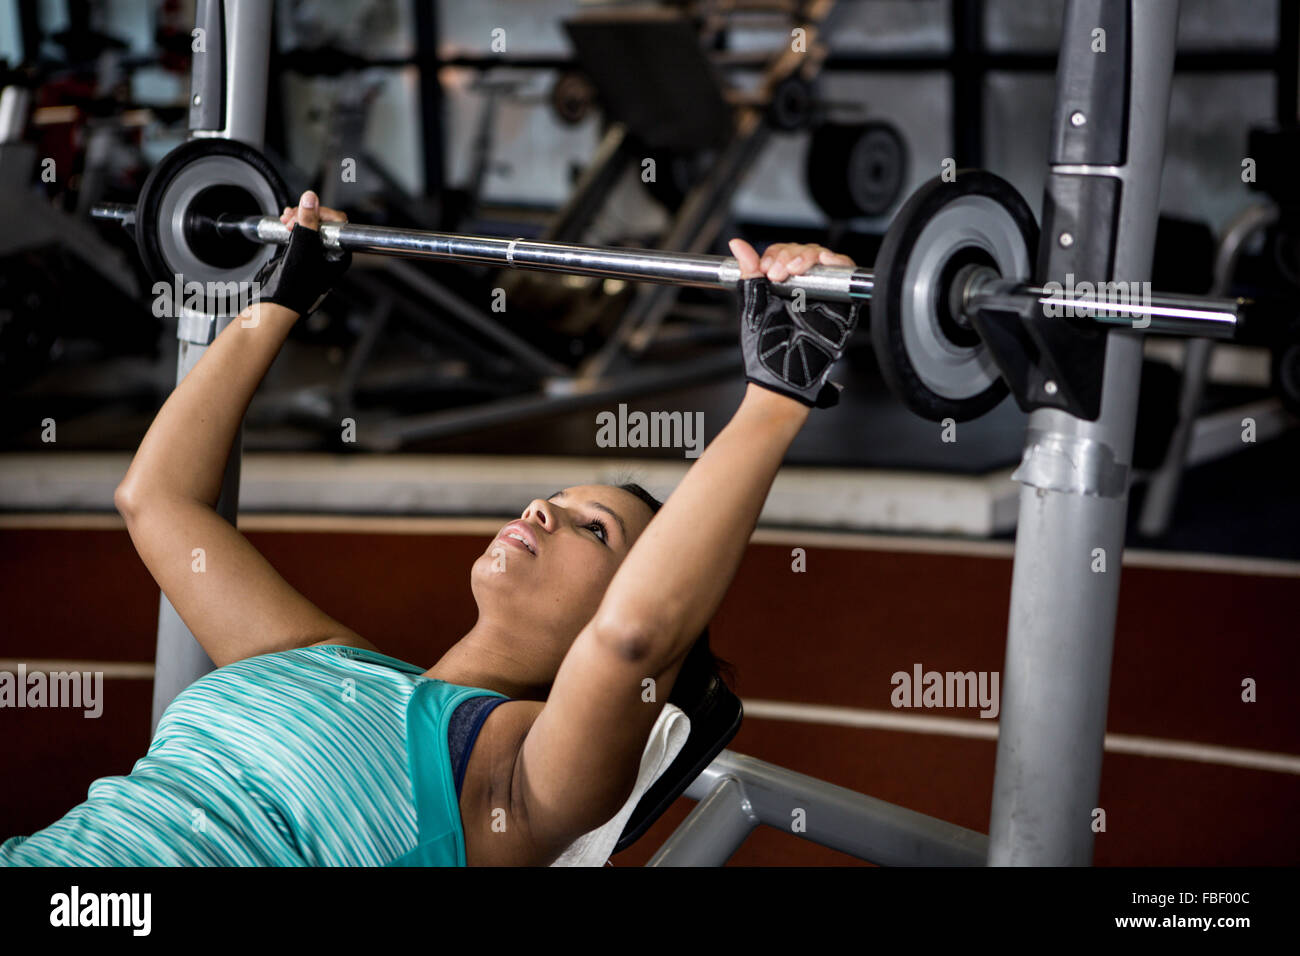 Pregnant woman lifting weights - Stock Image